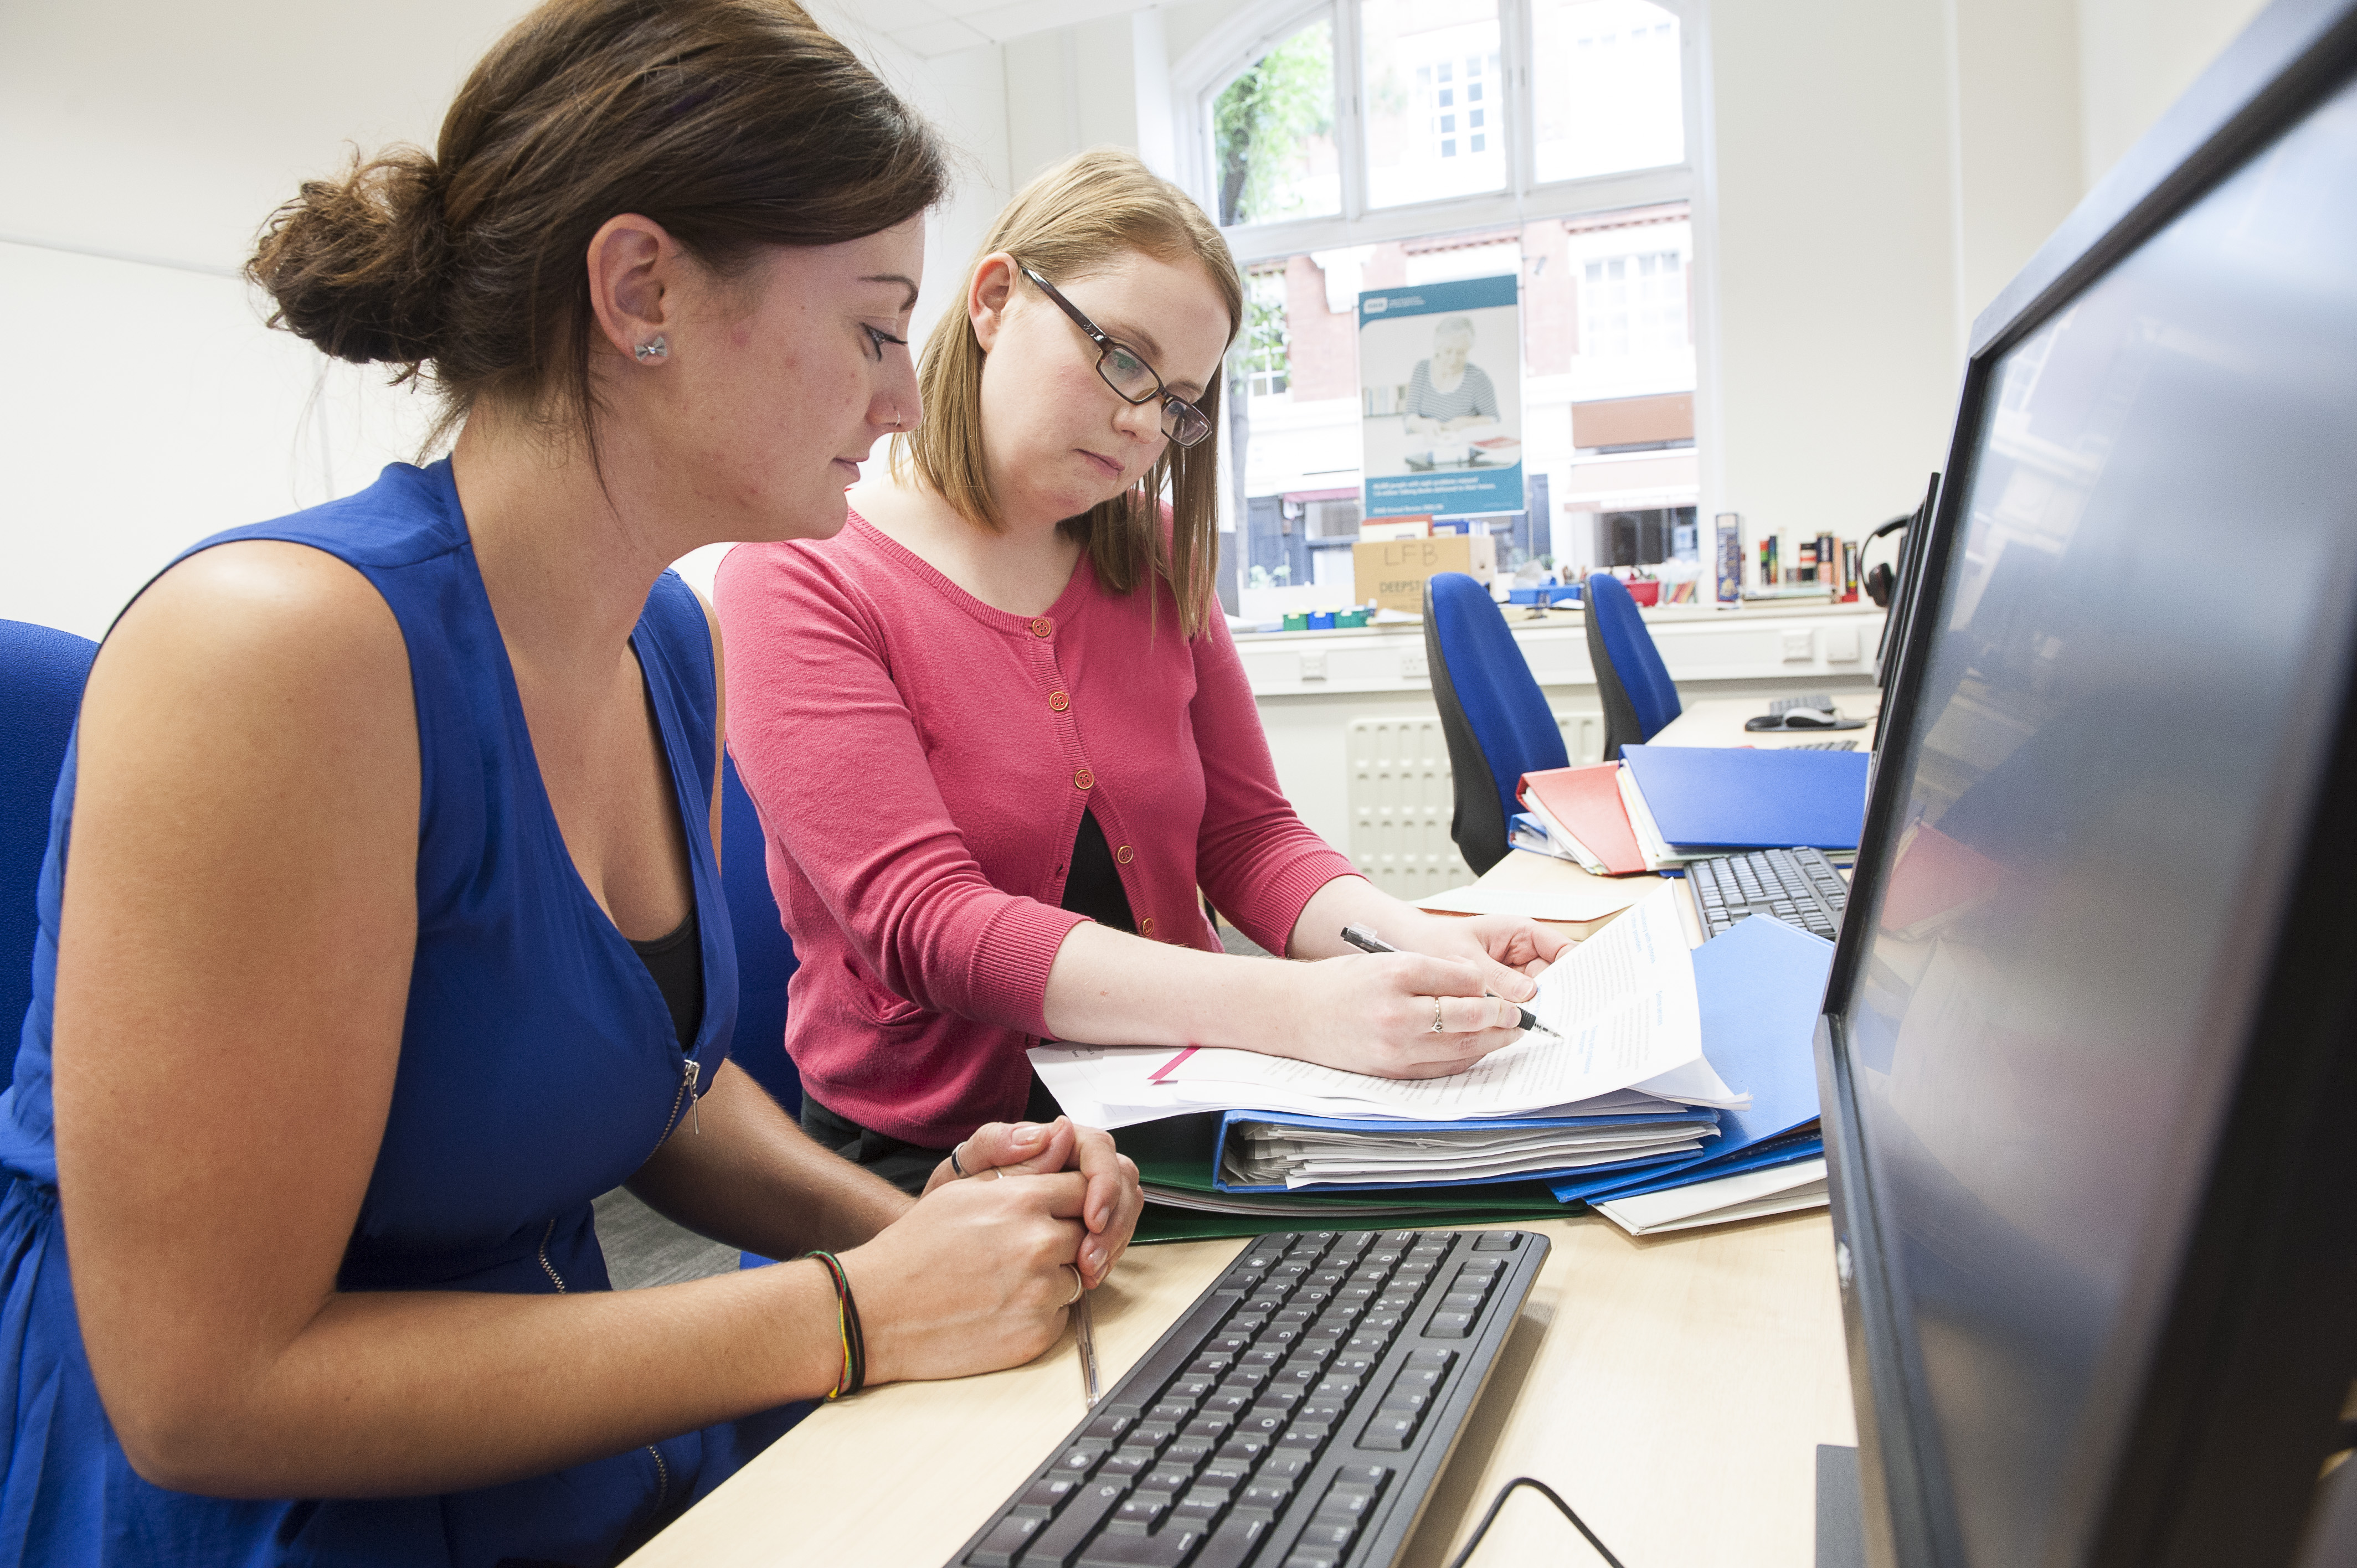 Course Image DACPD93-0720 - Developing Writing Skills in Adults with Dyslexia